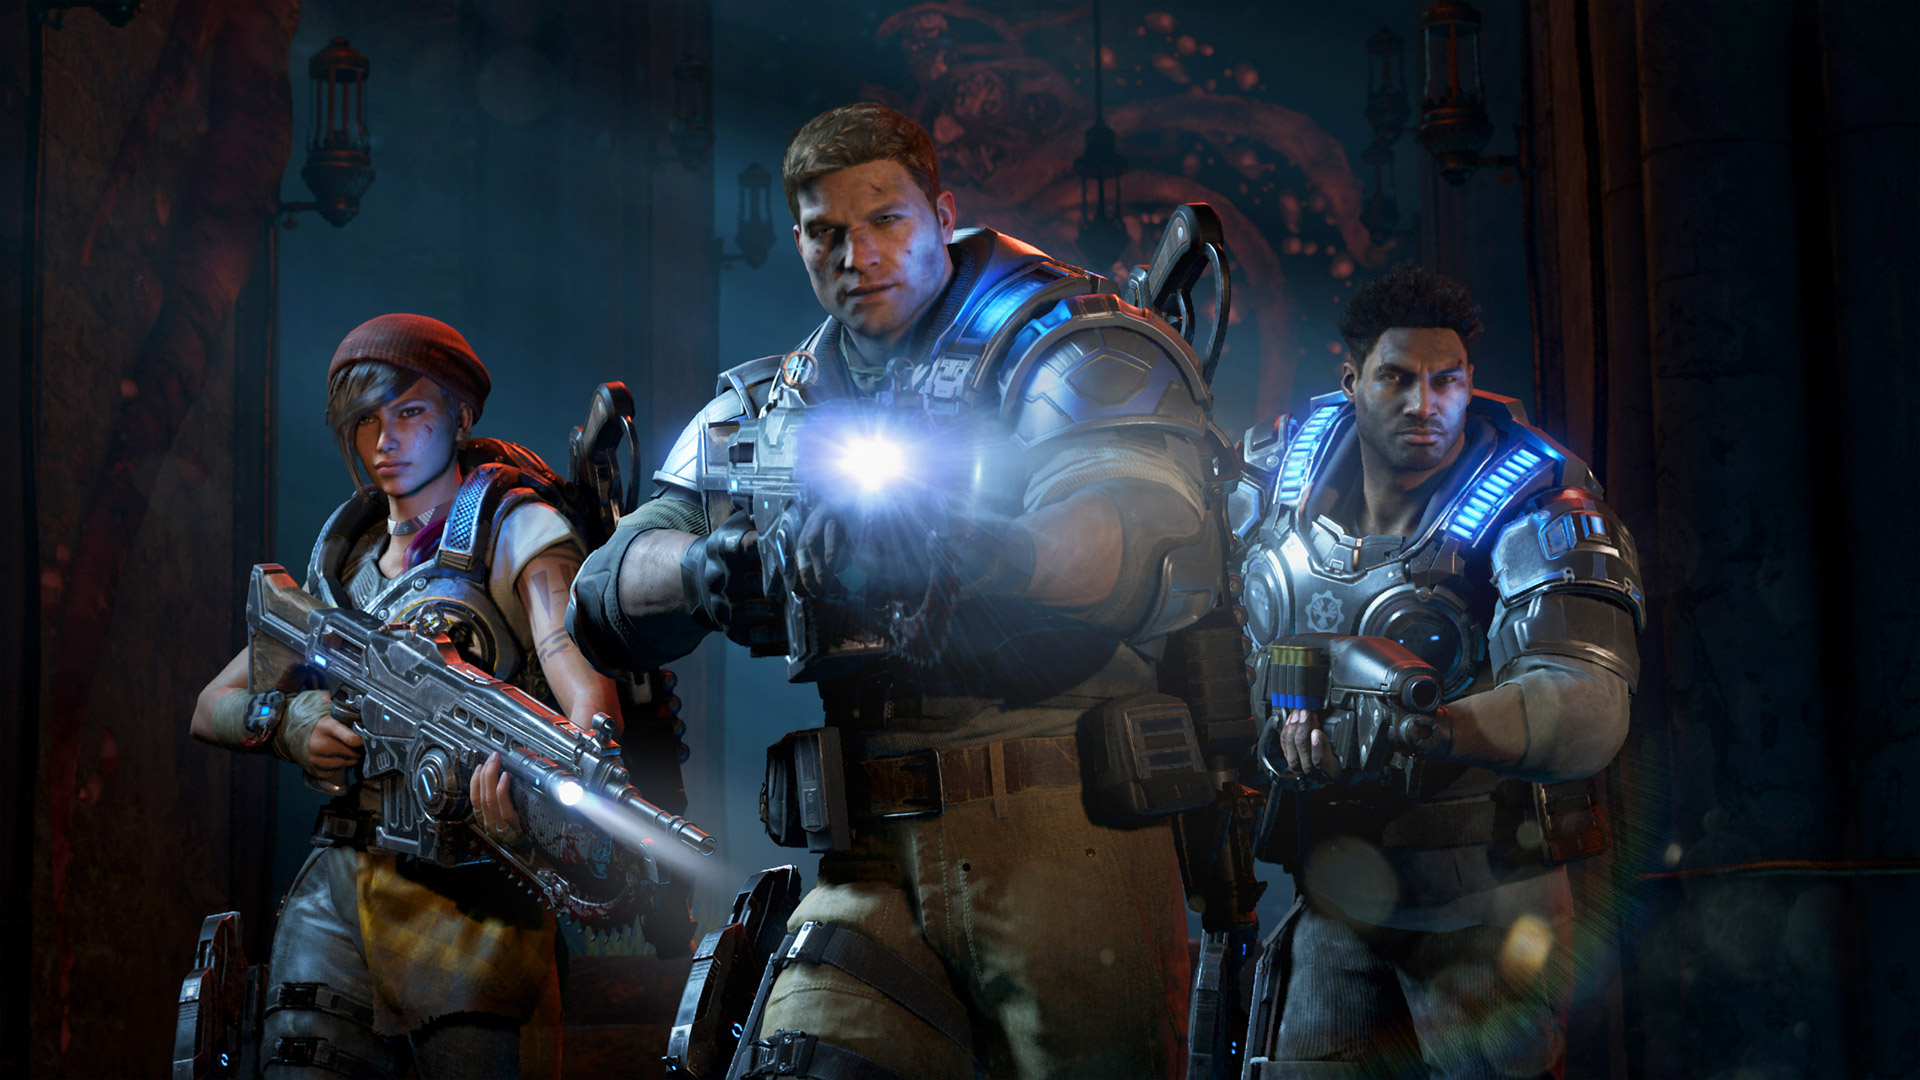 Gears of War 4 Wallpaper in 1920x1080